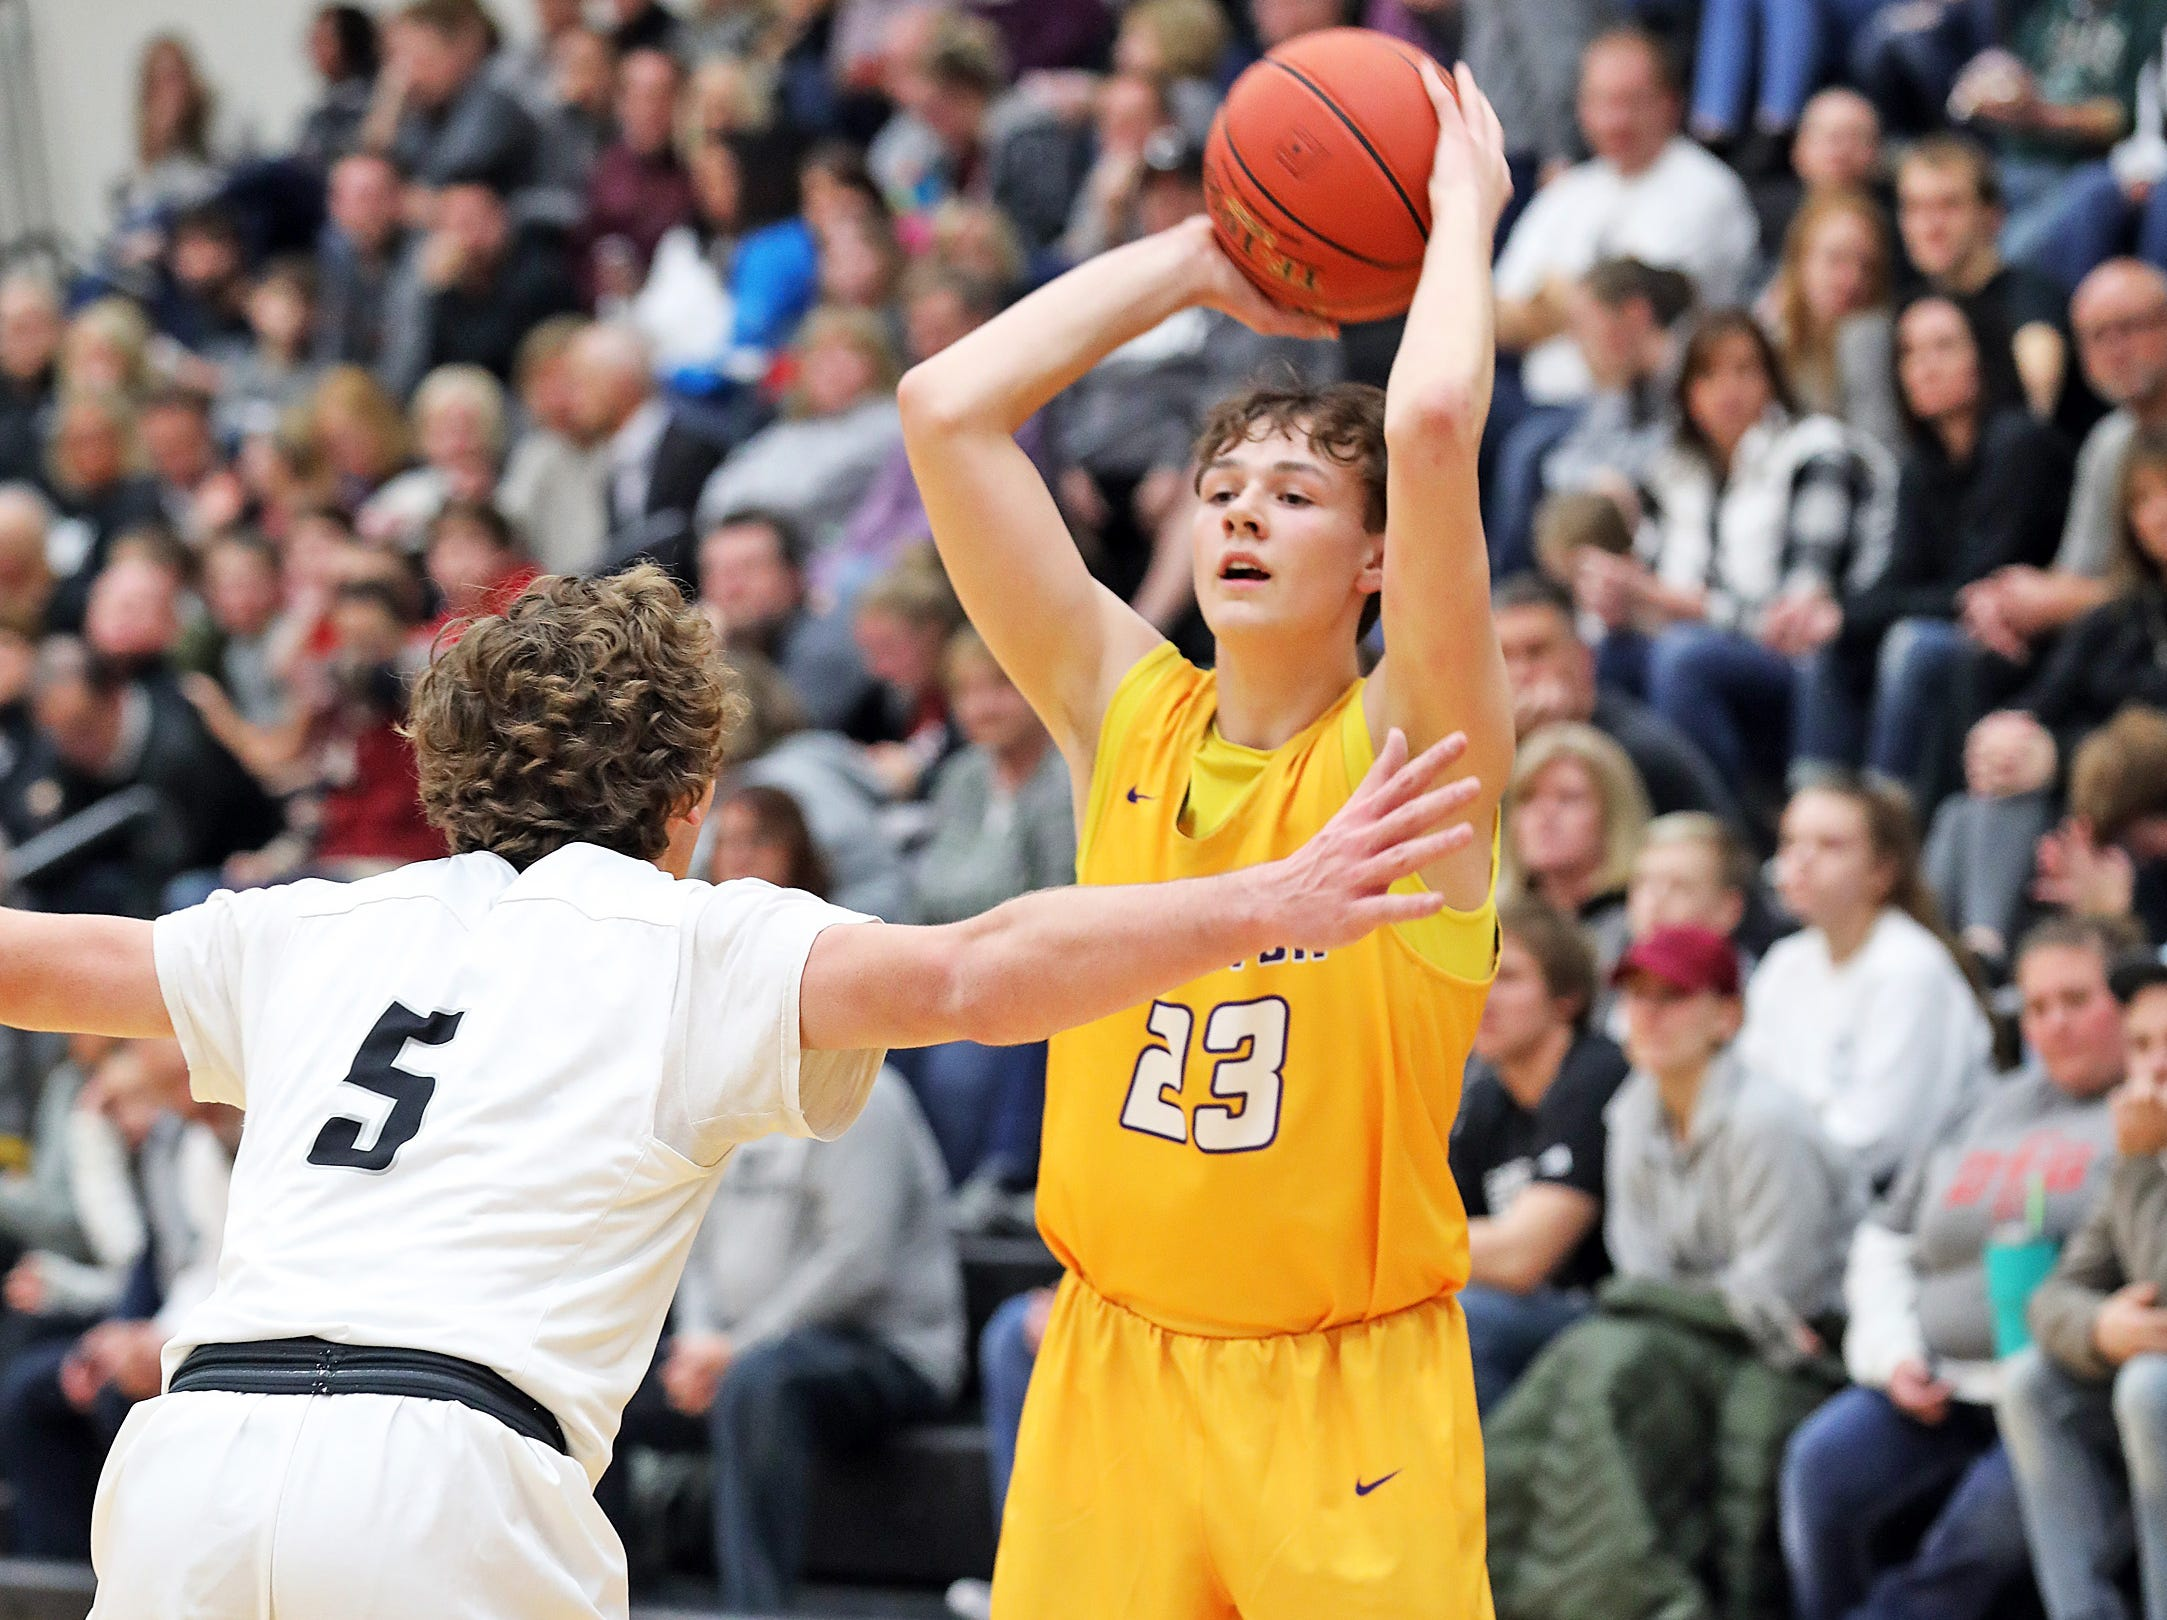 Johnston sophomore Reid Grant looks to pass as the Johnston Dragons compete against the Ankeny Centennial Jaguars in high school boys basketball on Friday, Jan. 4, 2019 at Ankeny Centennial High School.